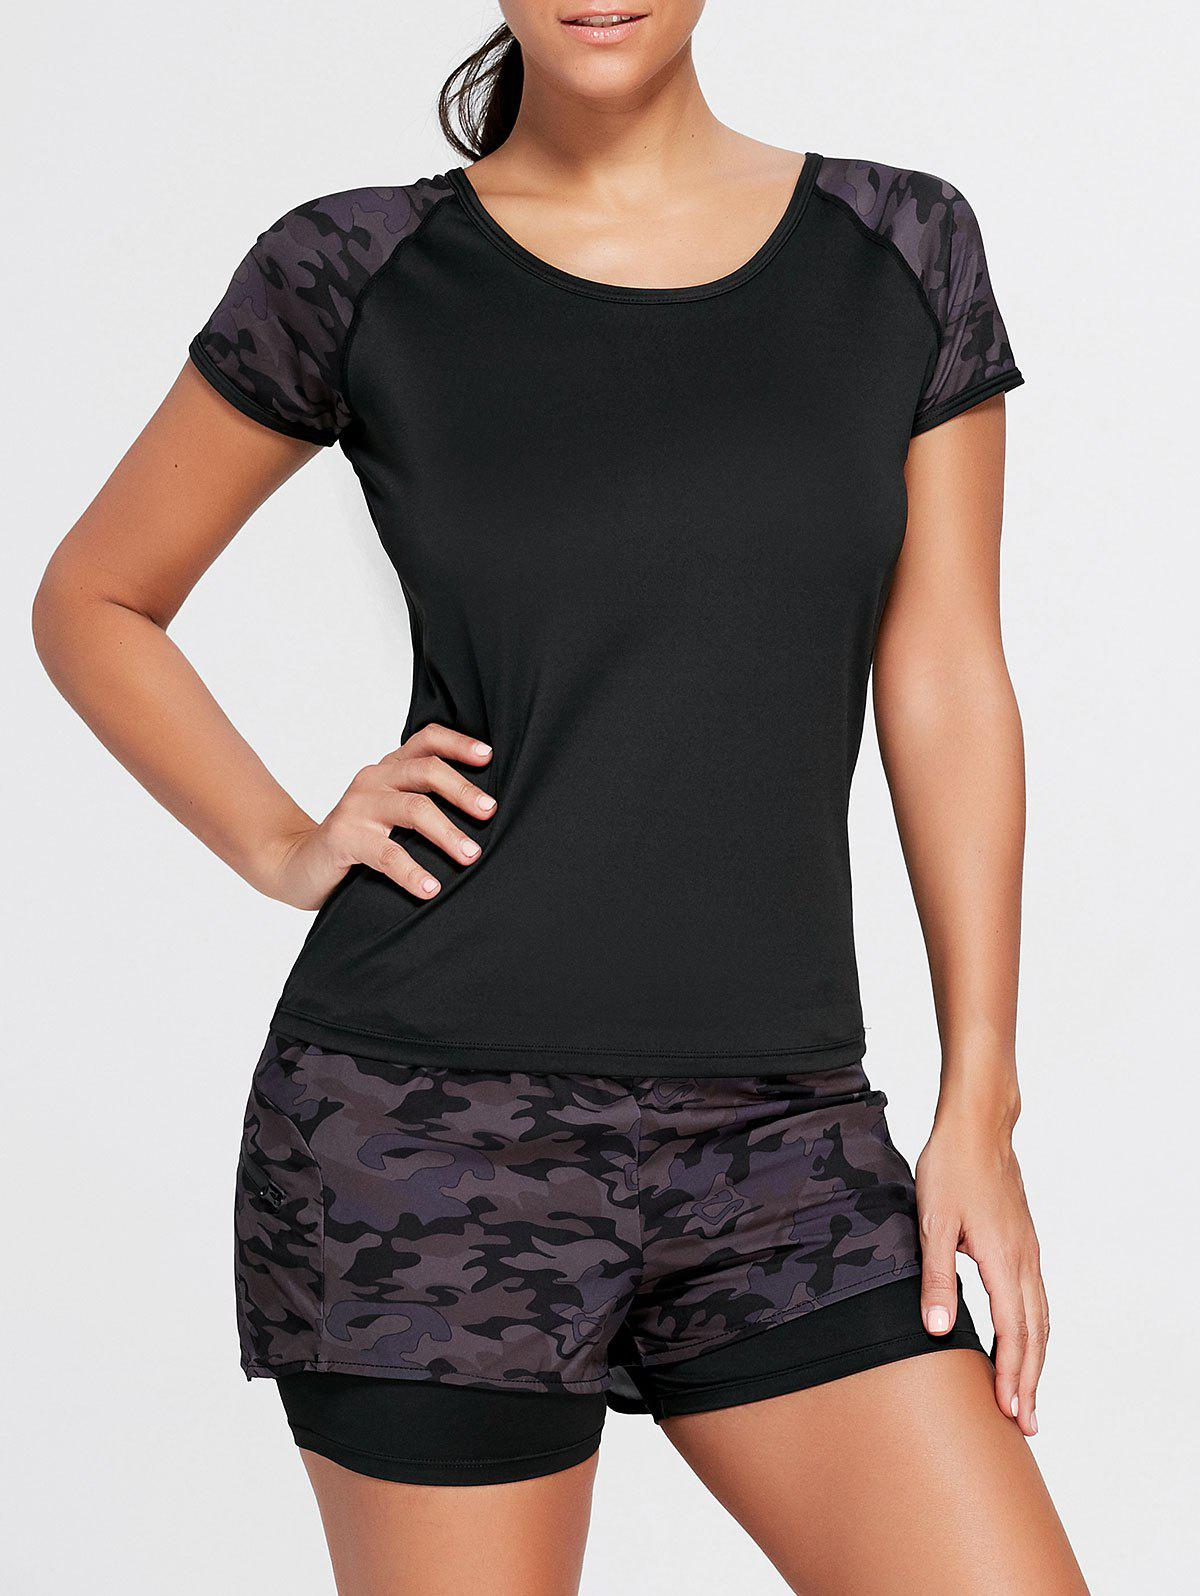 Camo Short Sleeve Sports Raglan Tee - BLACK 2XL